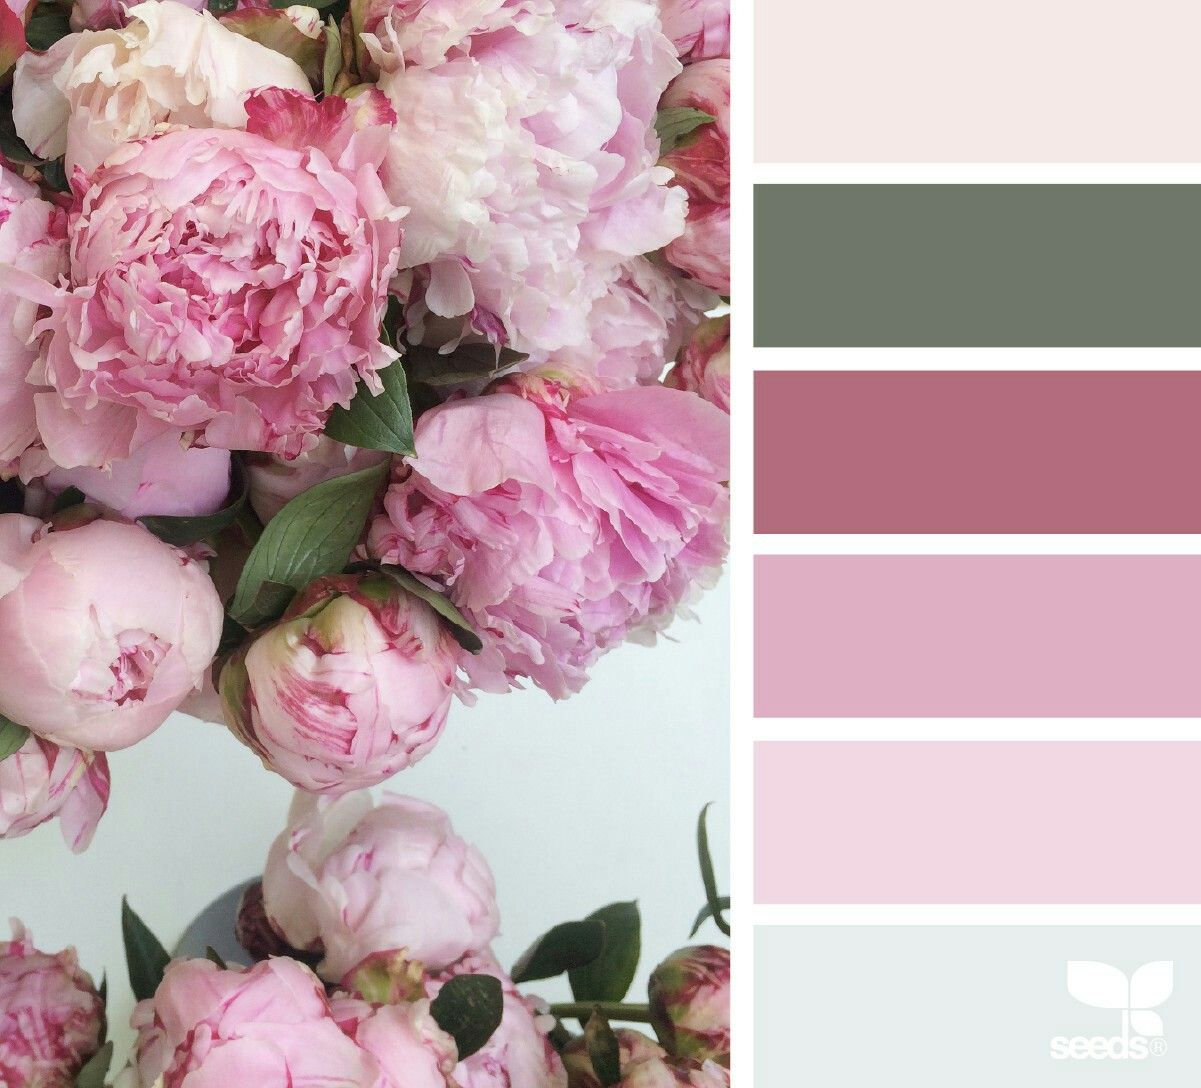 Pin by Eva Cooper on Paint colors   Pinterest   Peony, Color ...